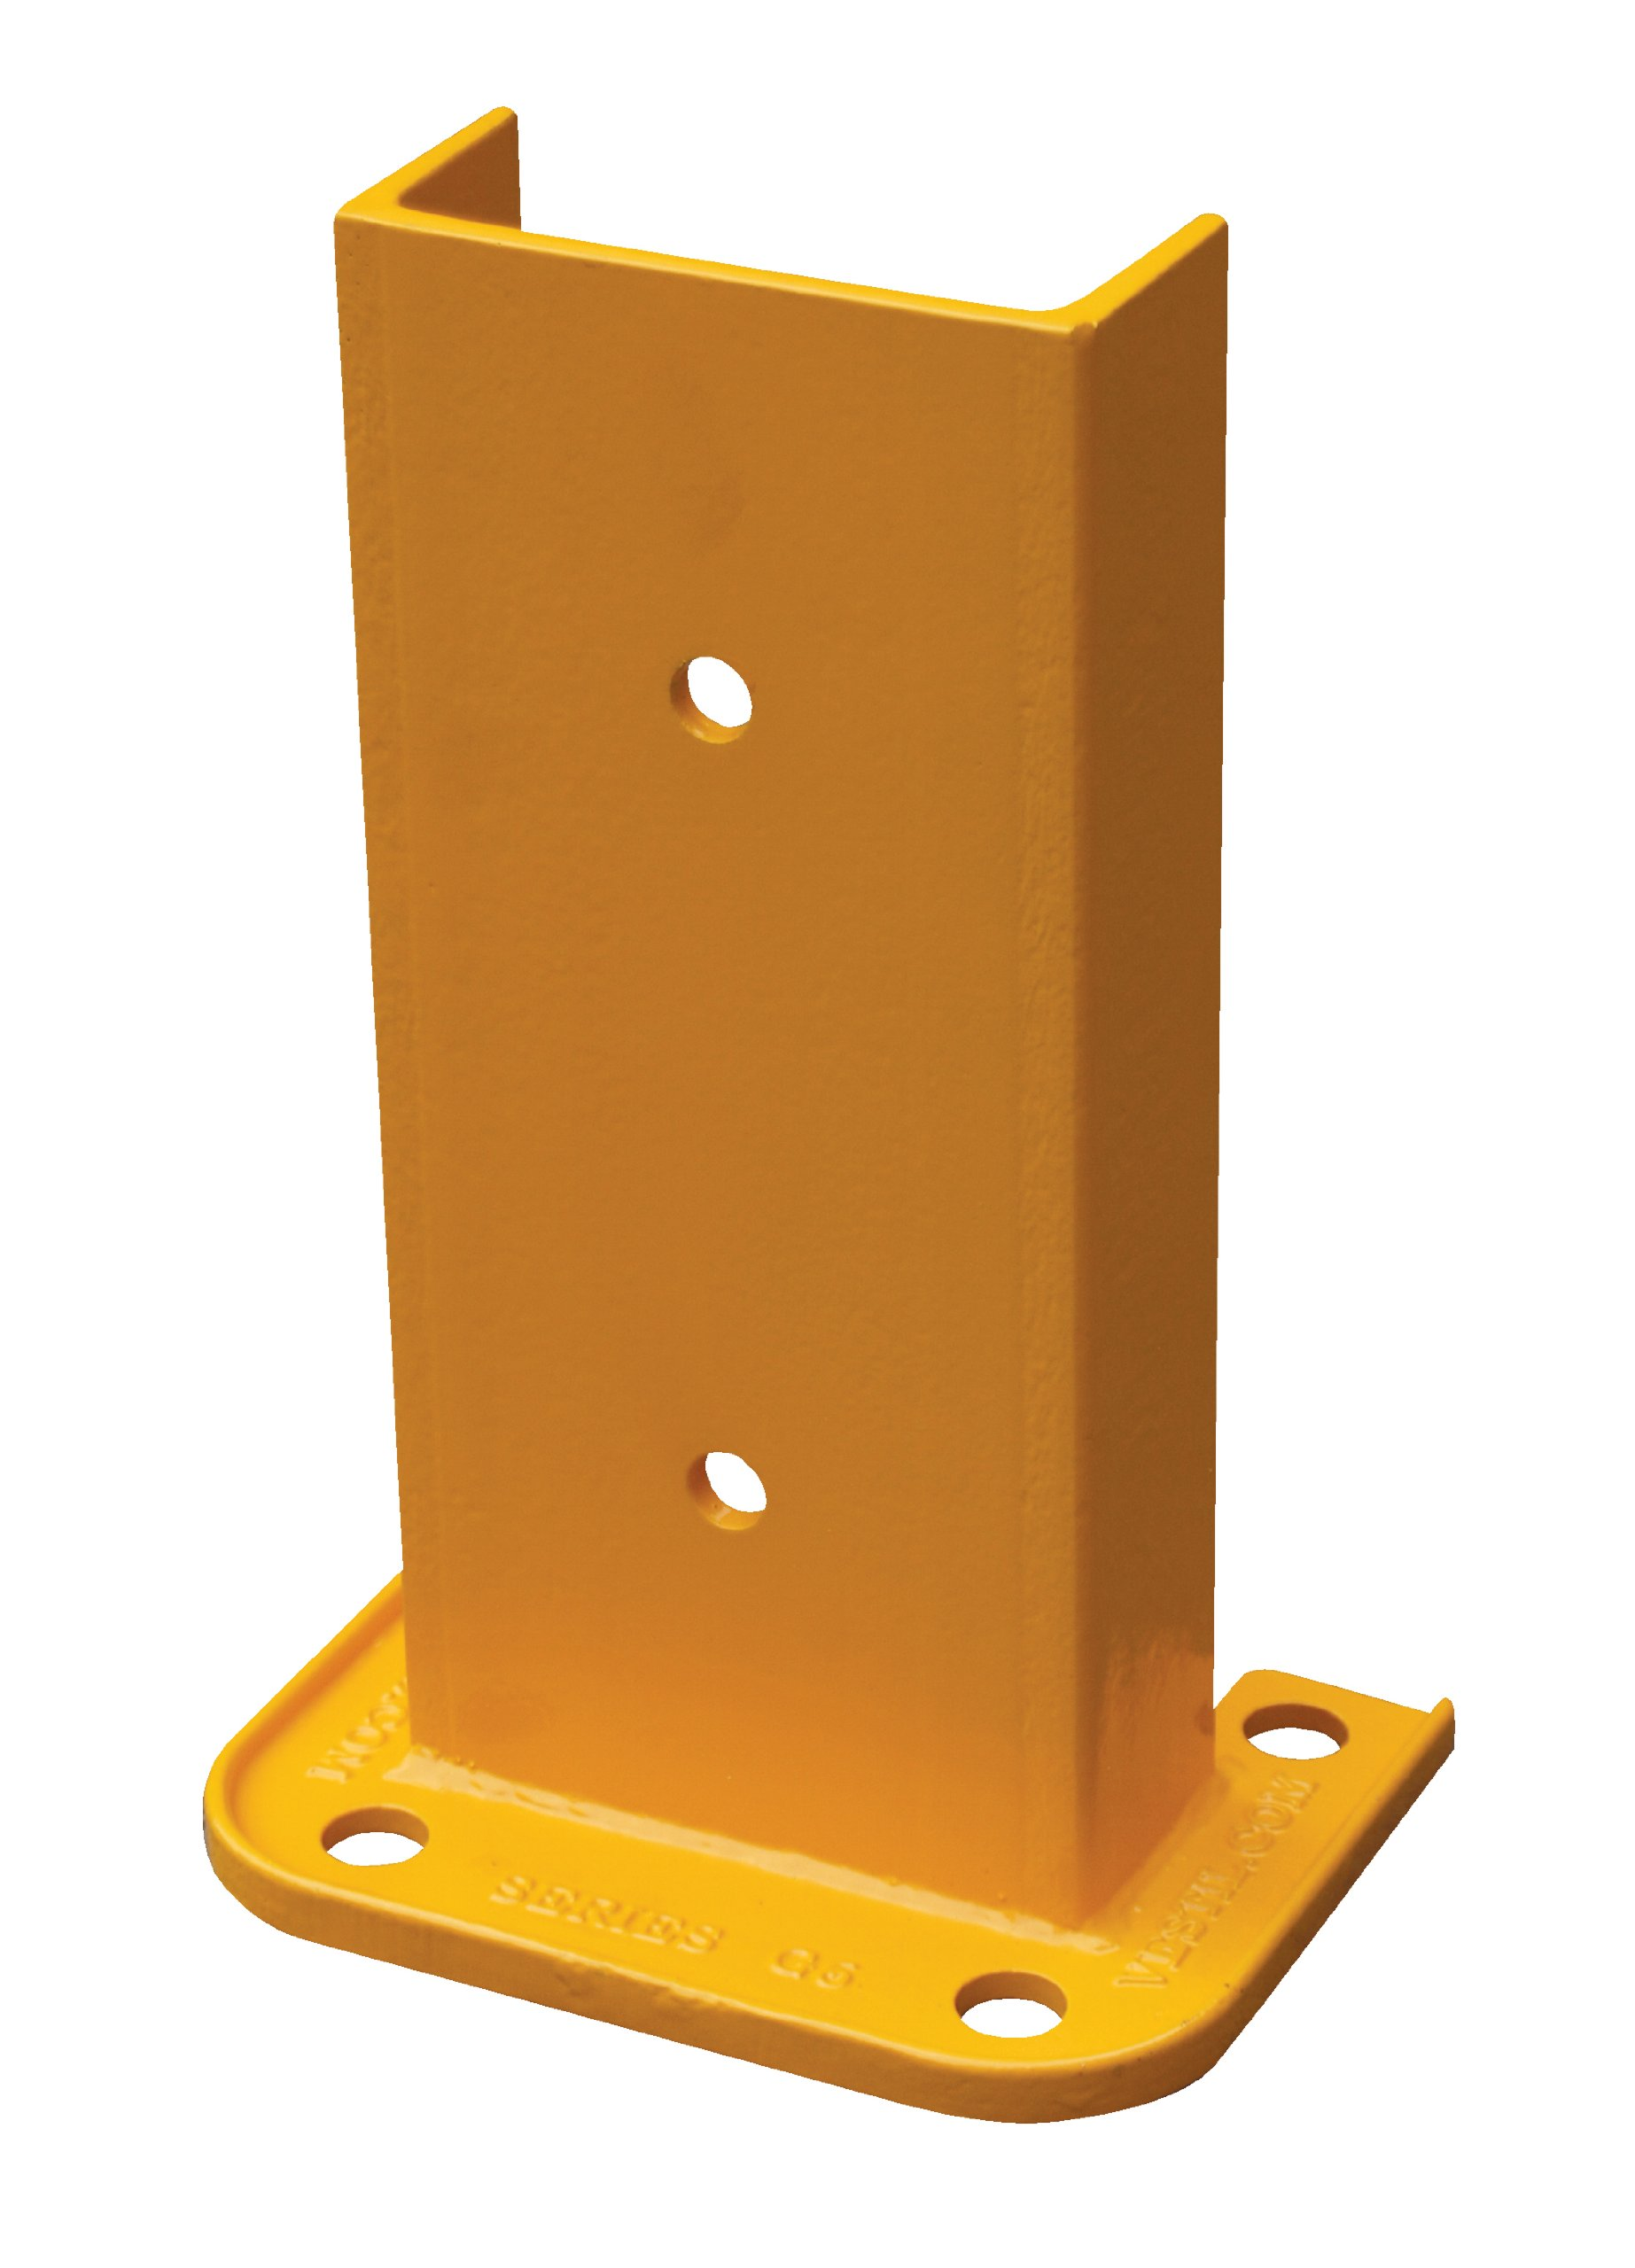 Vestil G6-12 Structural Steel Rack Guard, 4 Mounting Holes, 12-1/4'' Height, Base Measures 8-1/16'' x 6'', Safety Yellow by Vestil